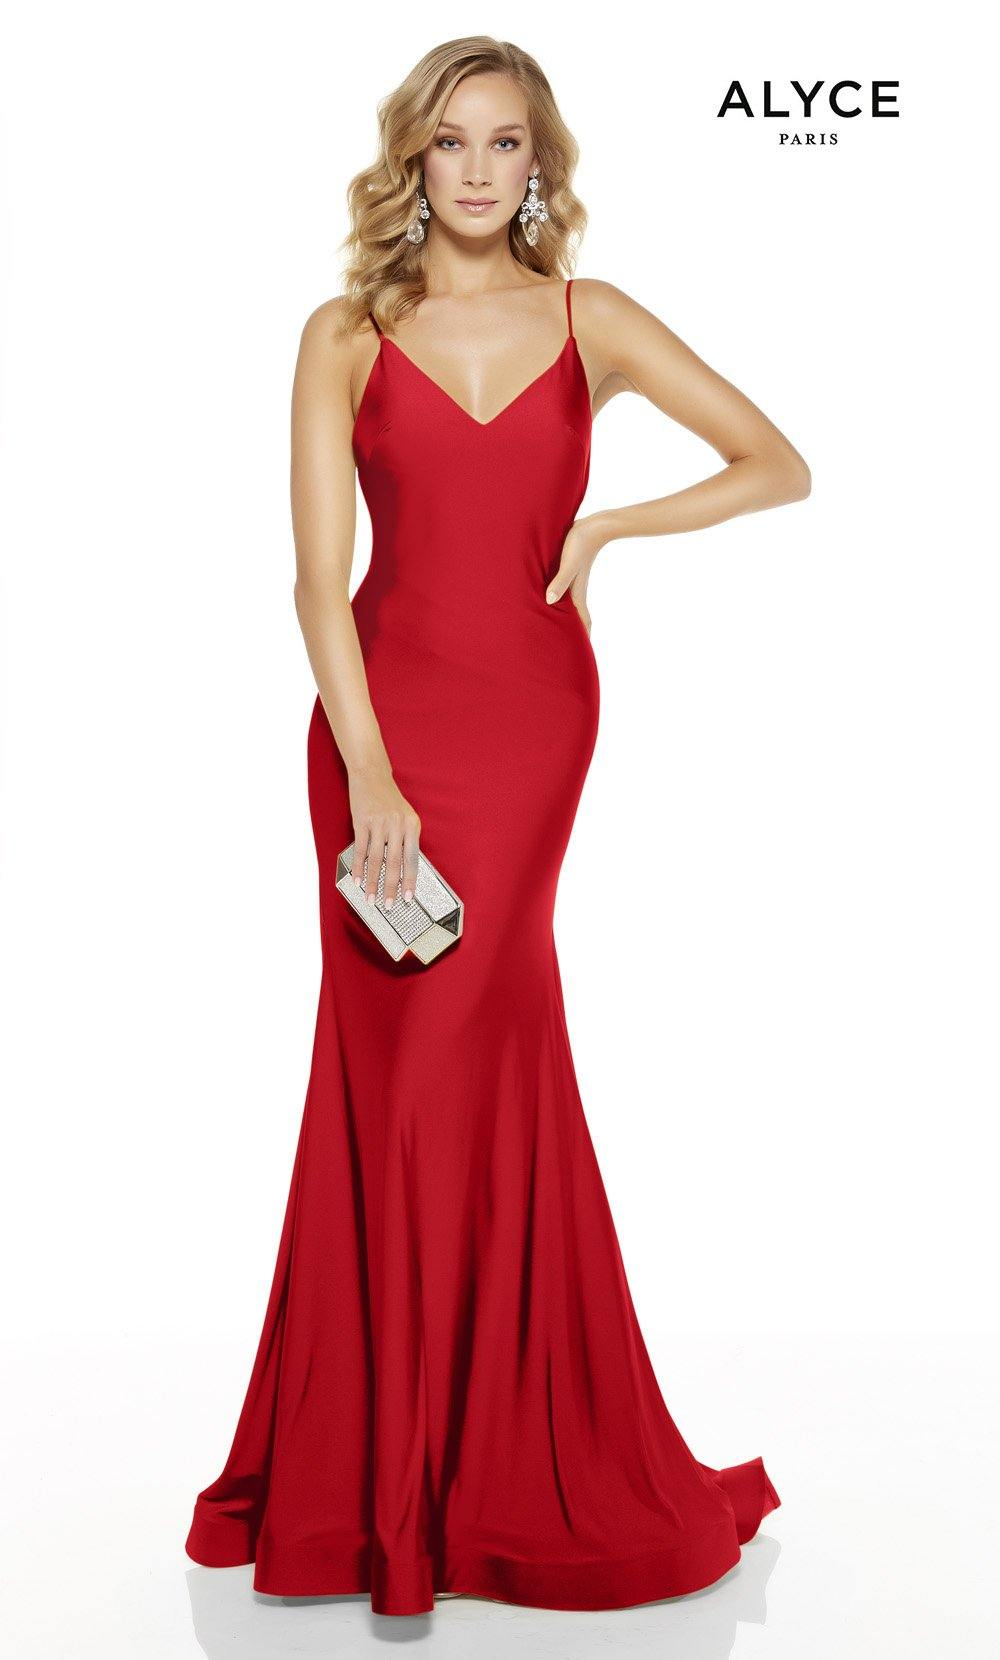 Red mermaid prom dress with a v-neckline